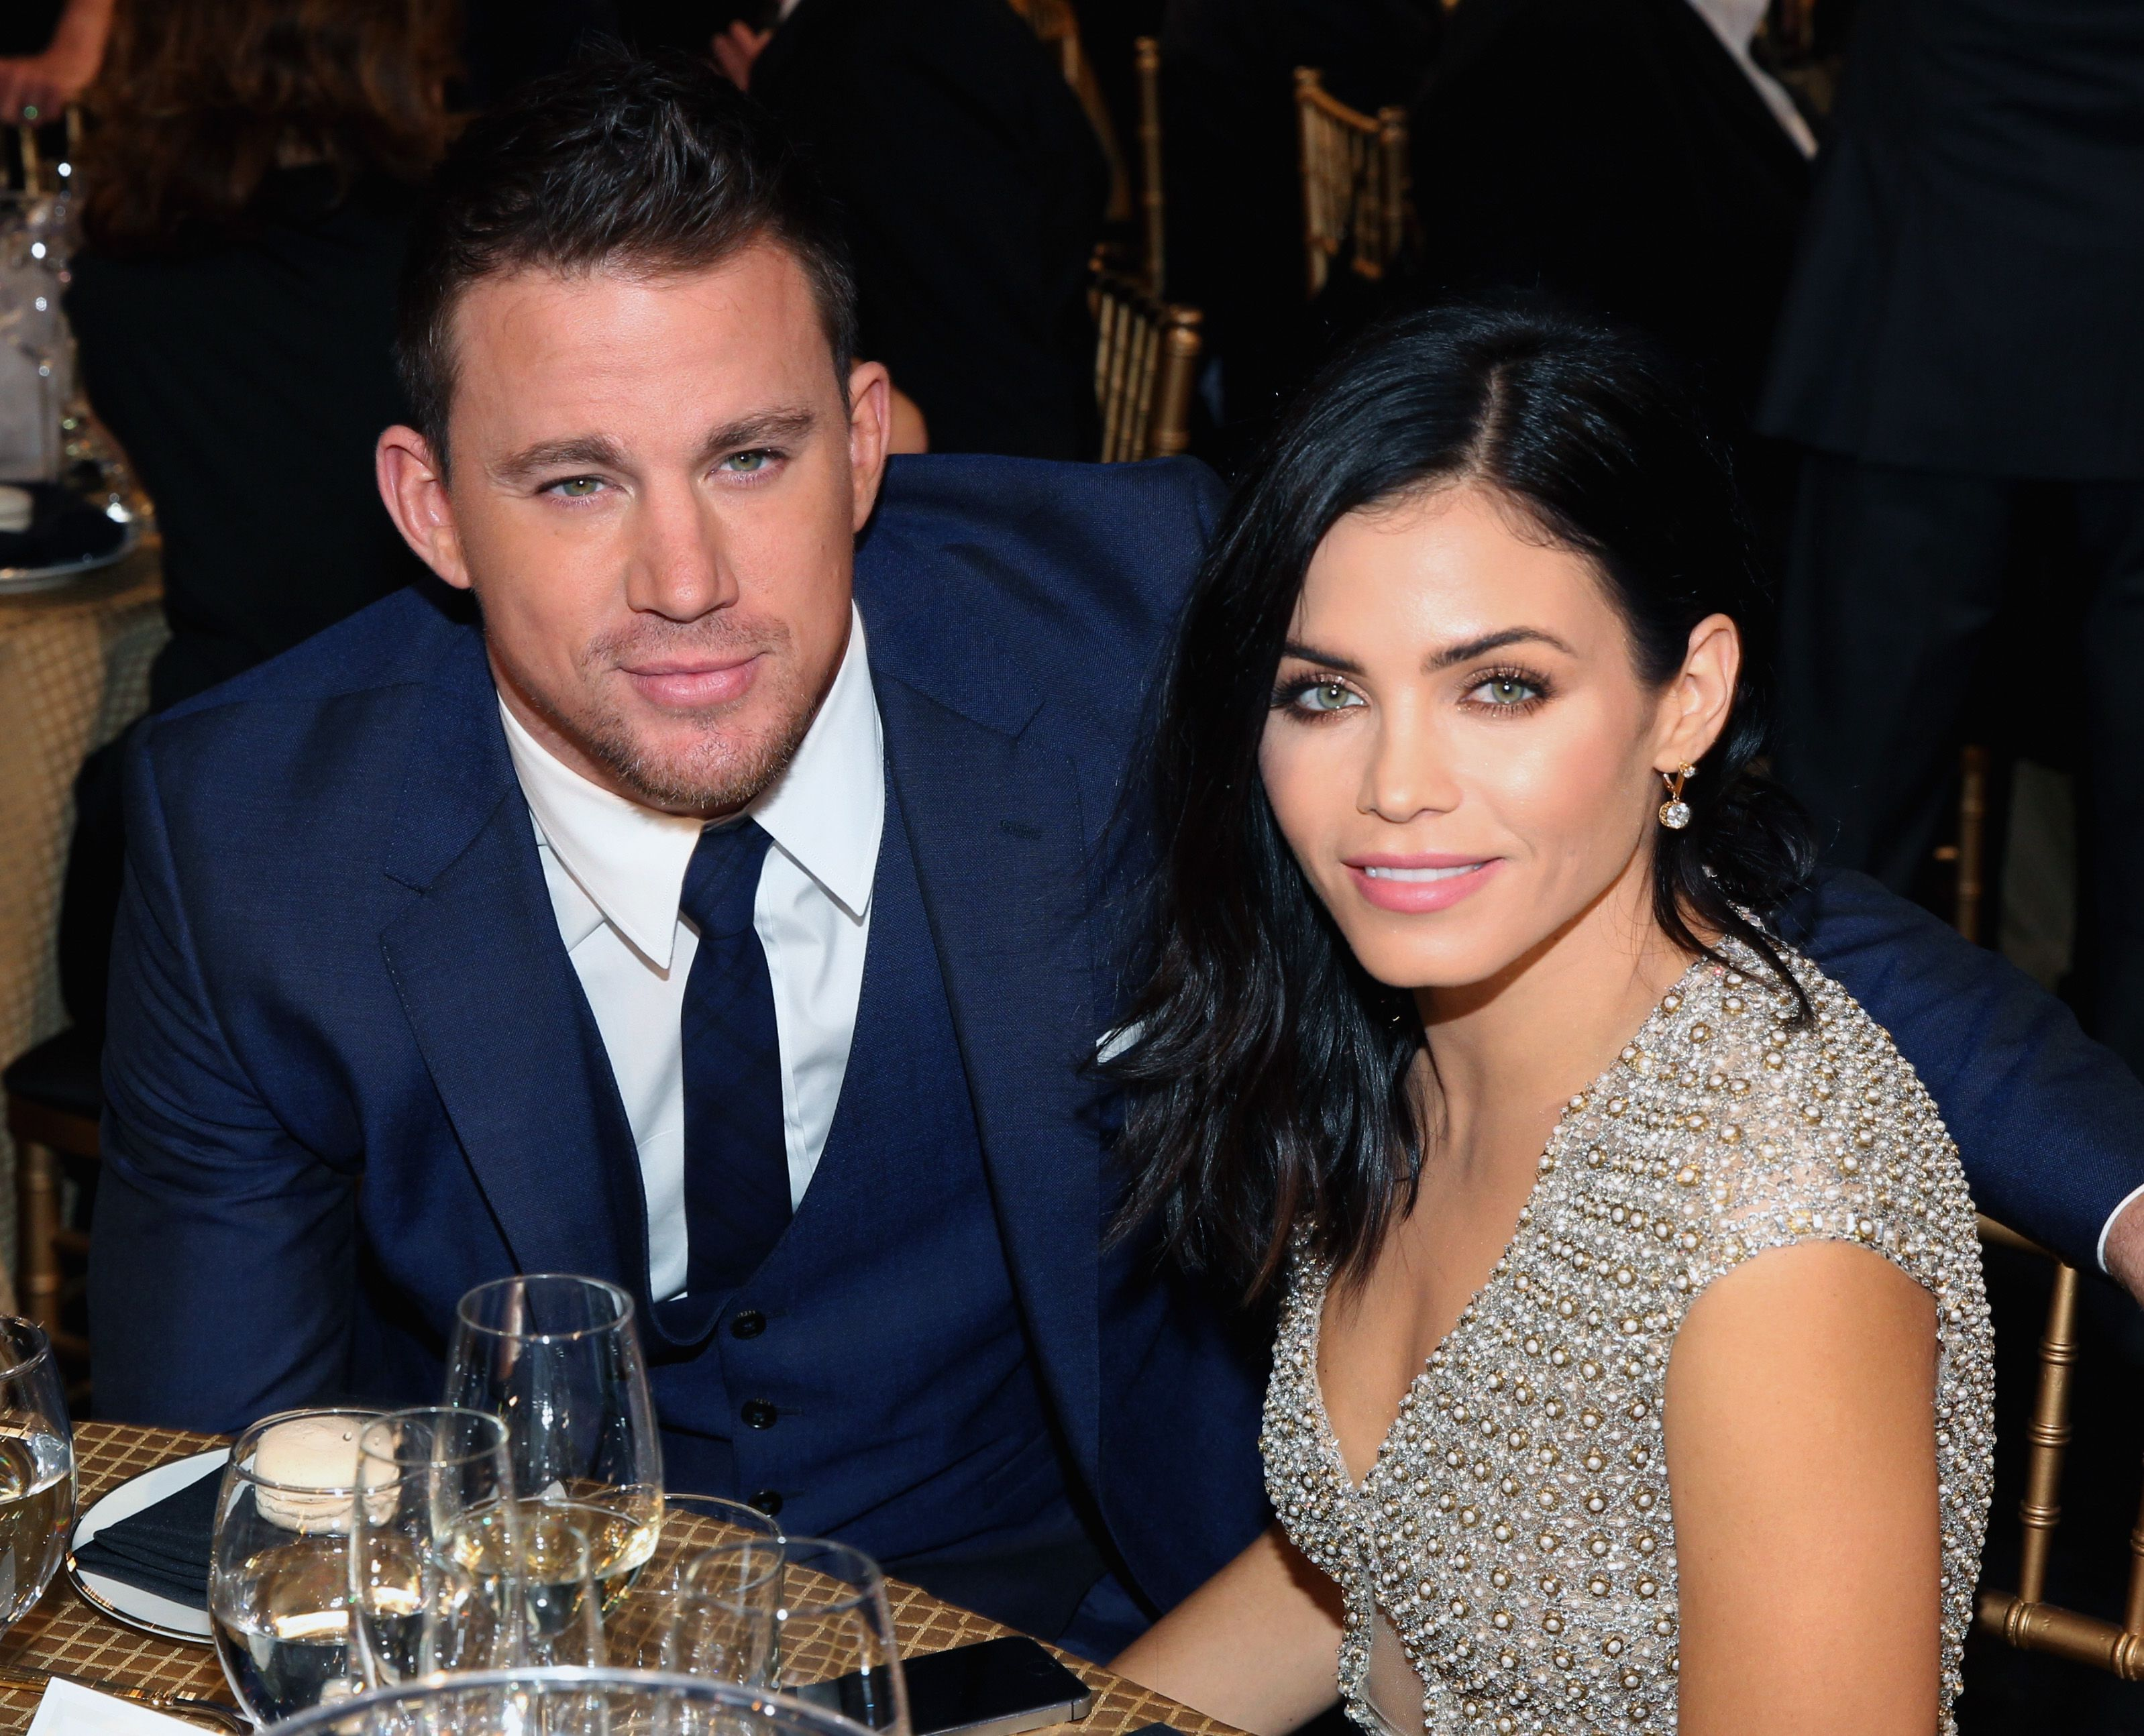 Jenna Dewan Found Out Her Ex Channing Tatum Was Dating Jessie J on In-Flight WiFi